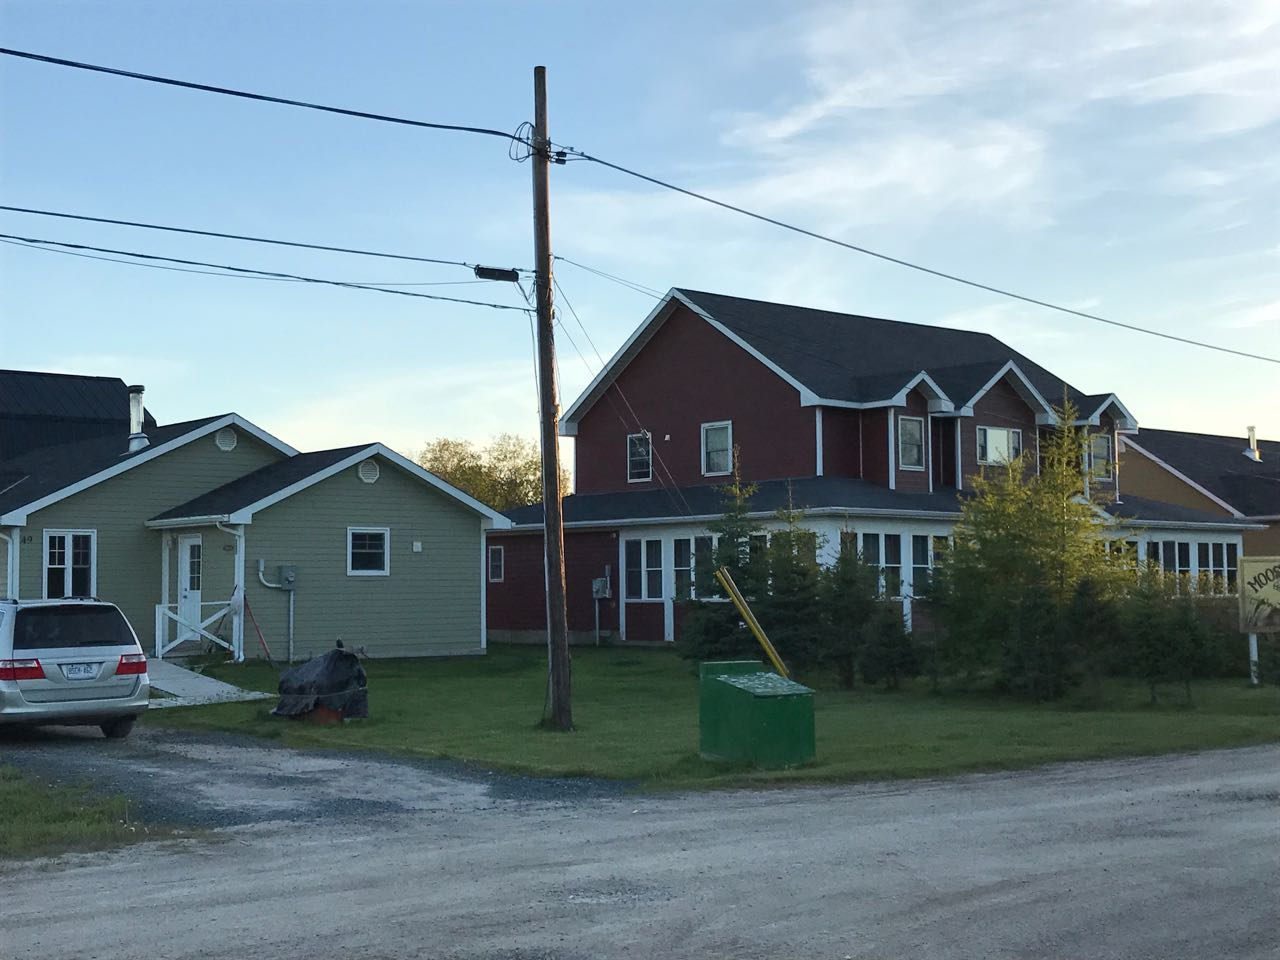 moose-river-guesthouse_35431857772_o.jpg